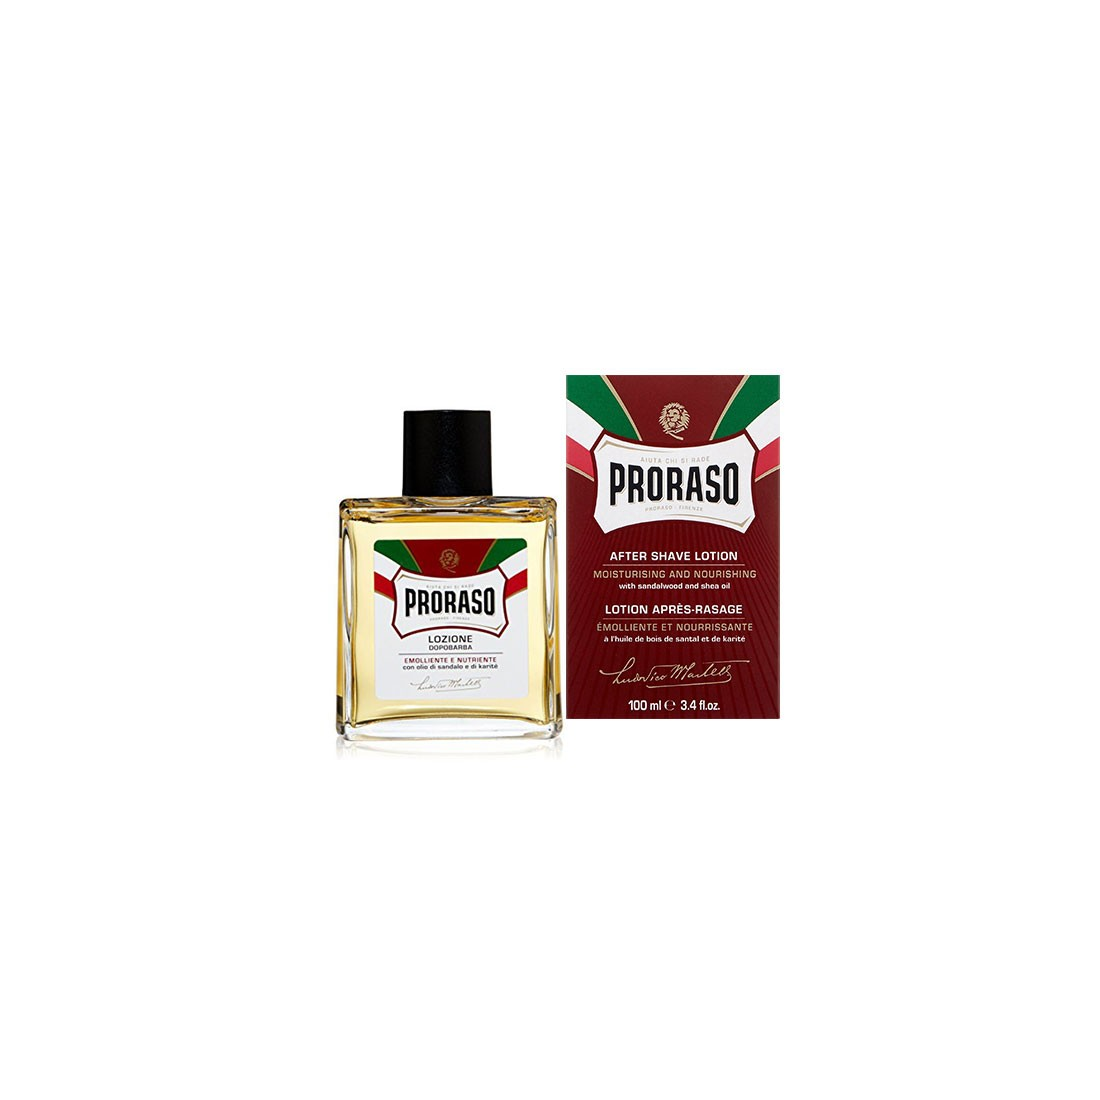 Proraso After Shave Lotion Sandalwood & Shea Oil – 100ml